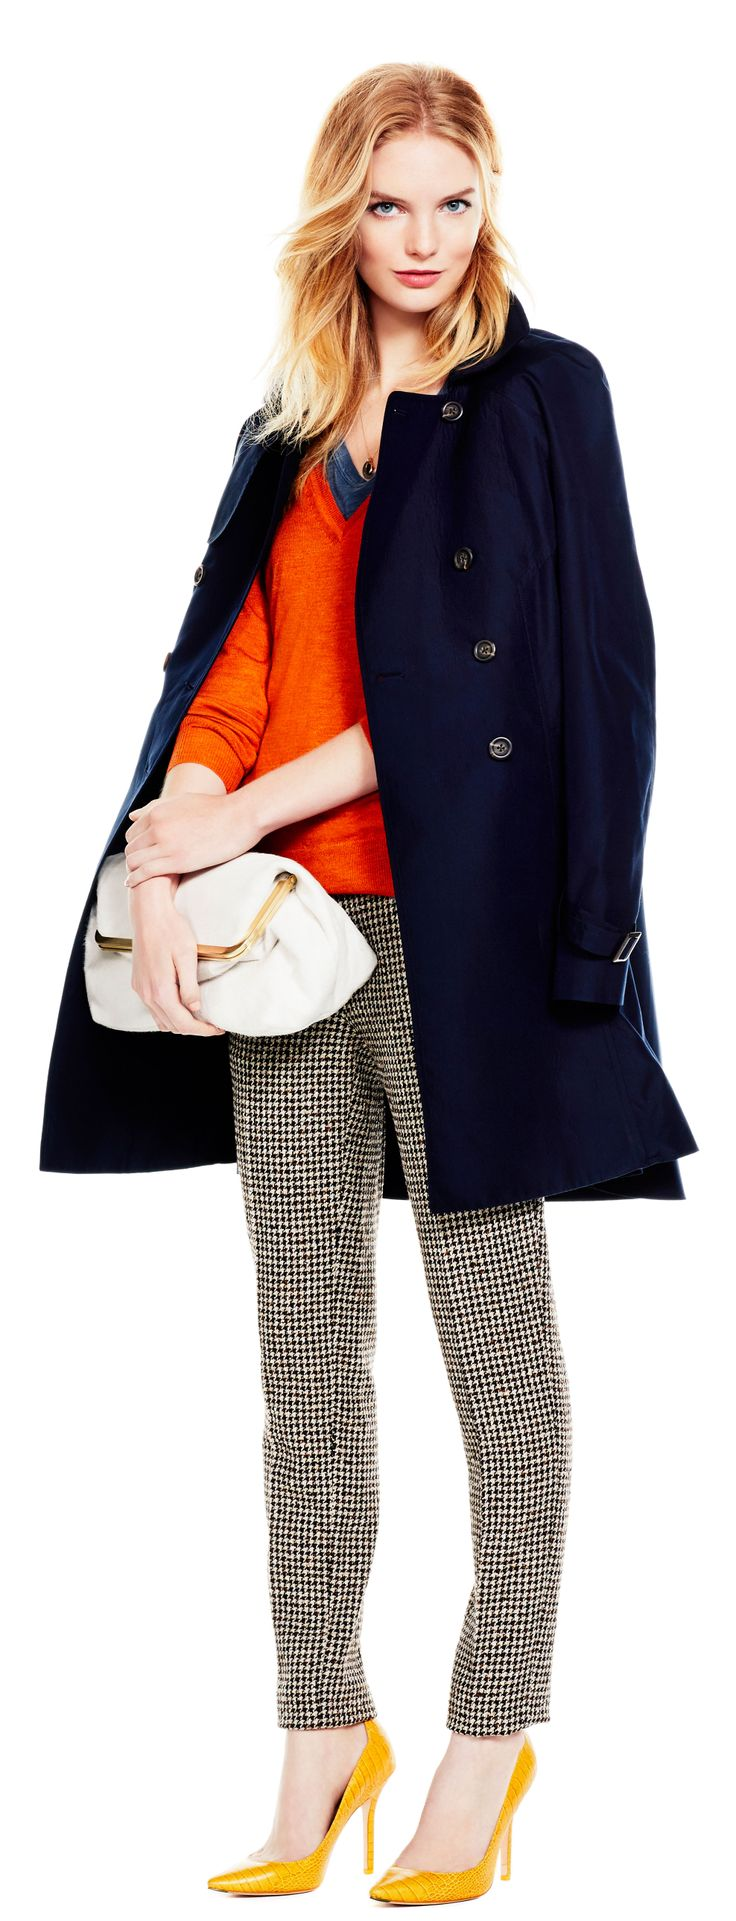 Navy and houndstooth.: Whowhatwearcom, Navy Coats, Whowhatwear Com, Orange Sweaters, Marines Layered, Outfits Ideas, Navy Peacoats, Trench Coats, Plaid Pants